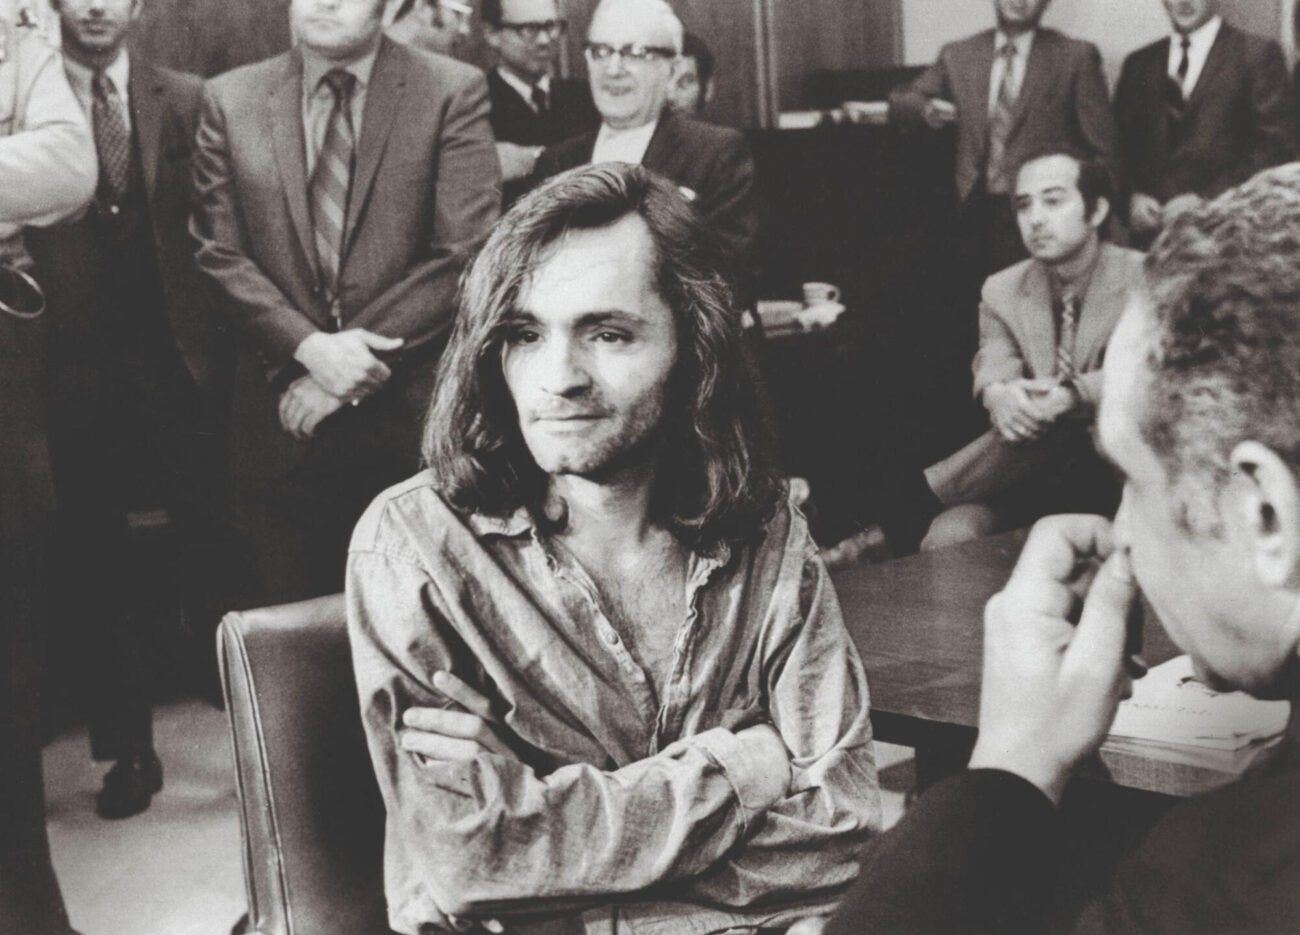 How is a song by The Beatles connected to one of the bloodiest, high-profile murders of the century? Investigate the Charlie Manson murders and find out!